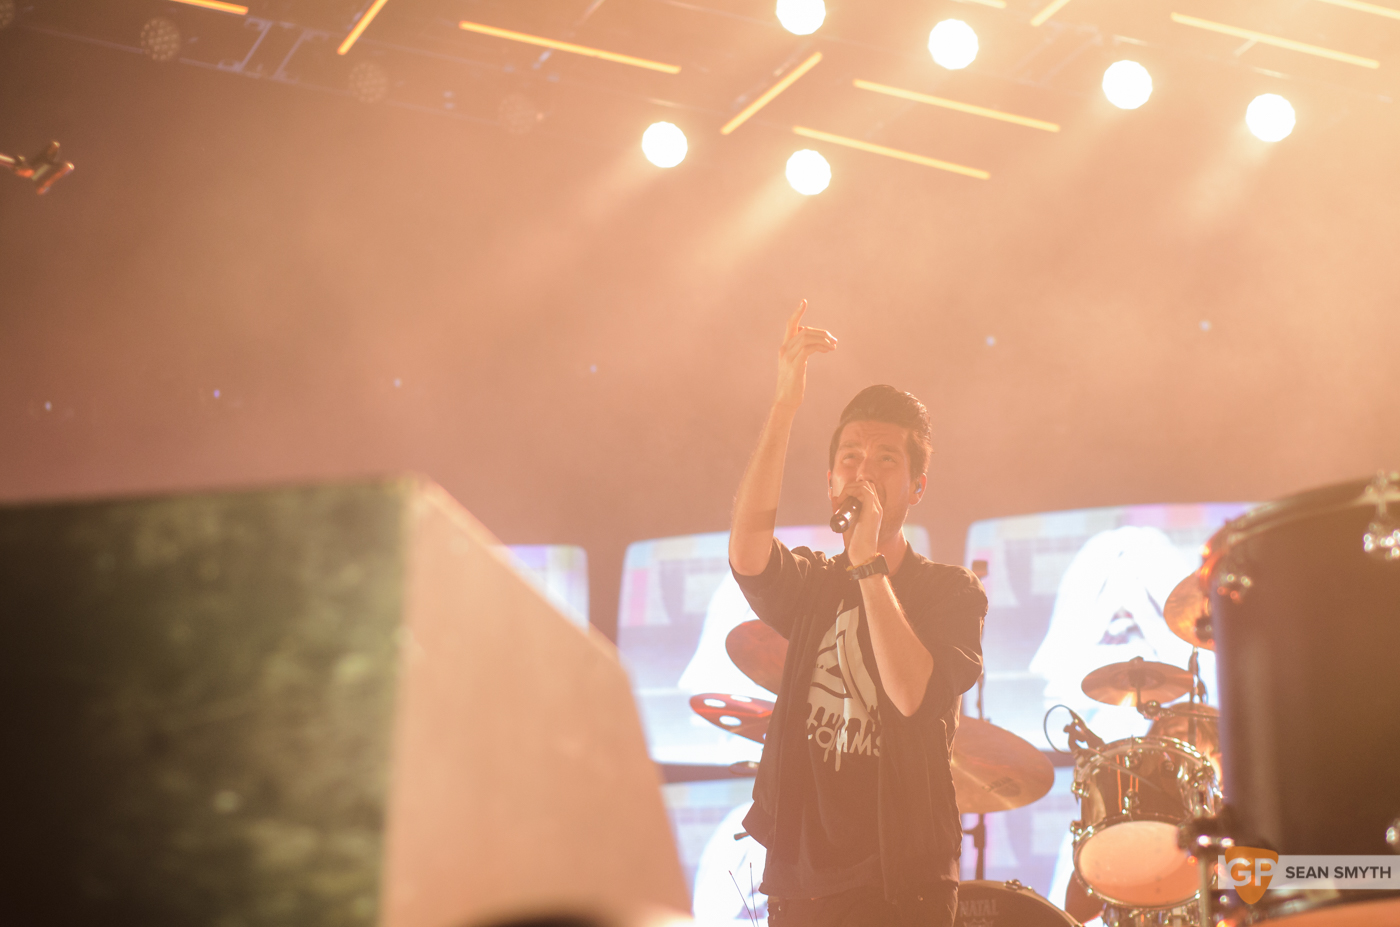 bastille-at-3arena-by-sean-smyth-10-11-16-24-of-25